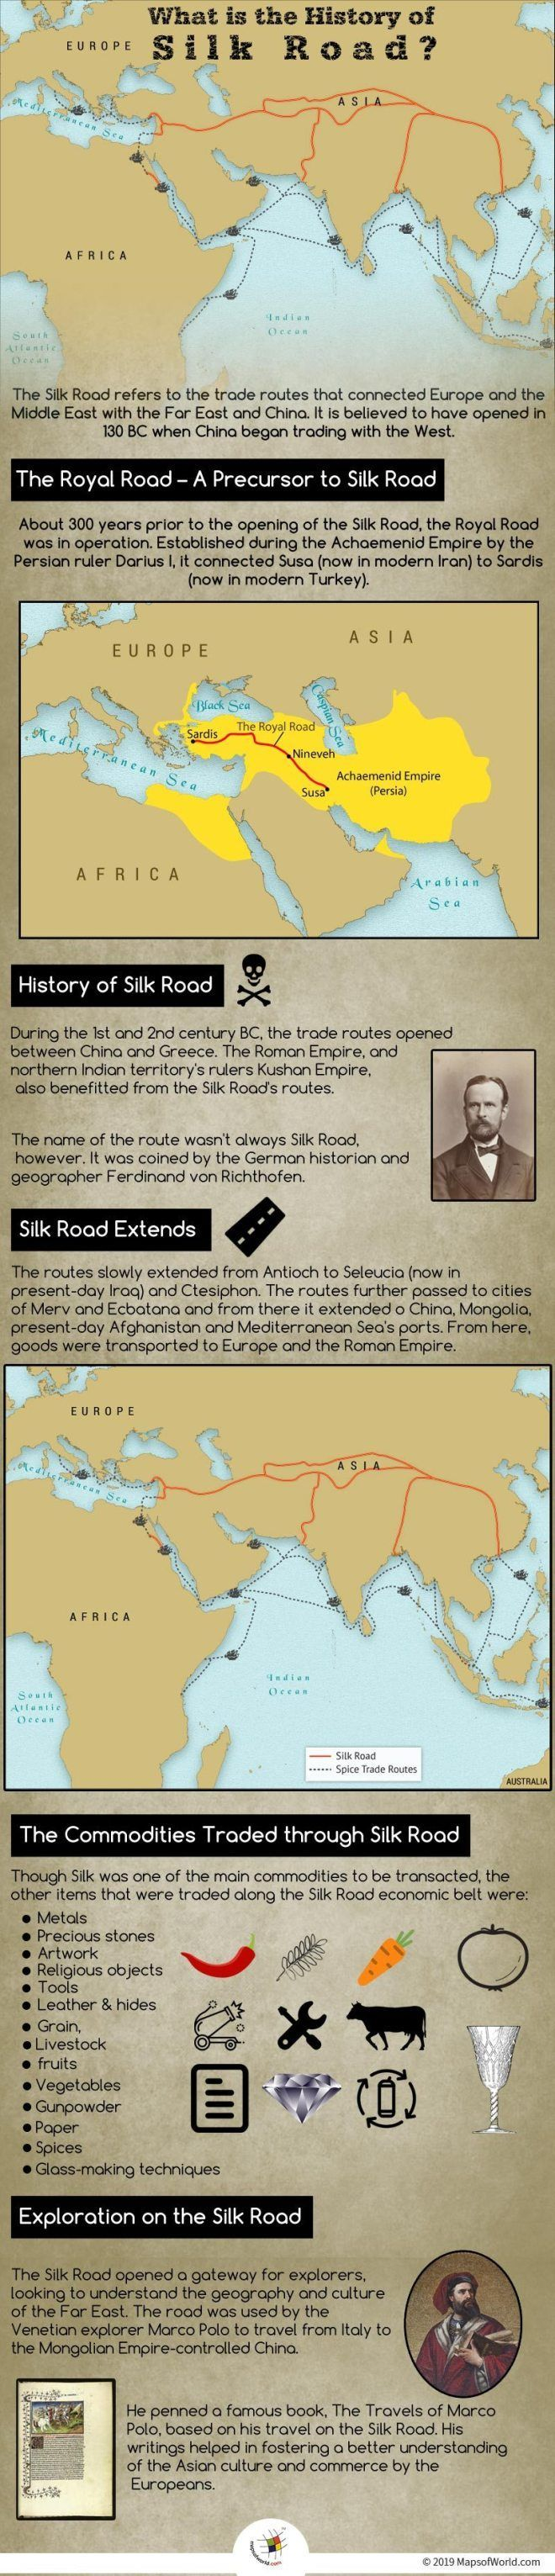 History Of Silk Road Historyoftheworld The Silkroad Is Actually The Traderoutes That Connected Europe And The Middleeast Silk Road History Silk Road China